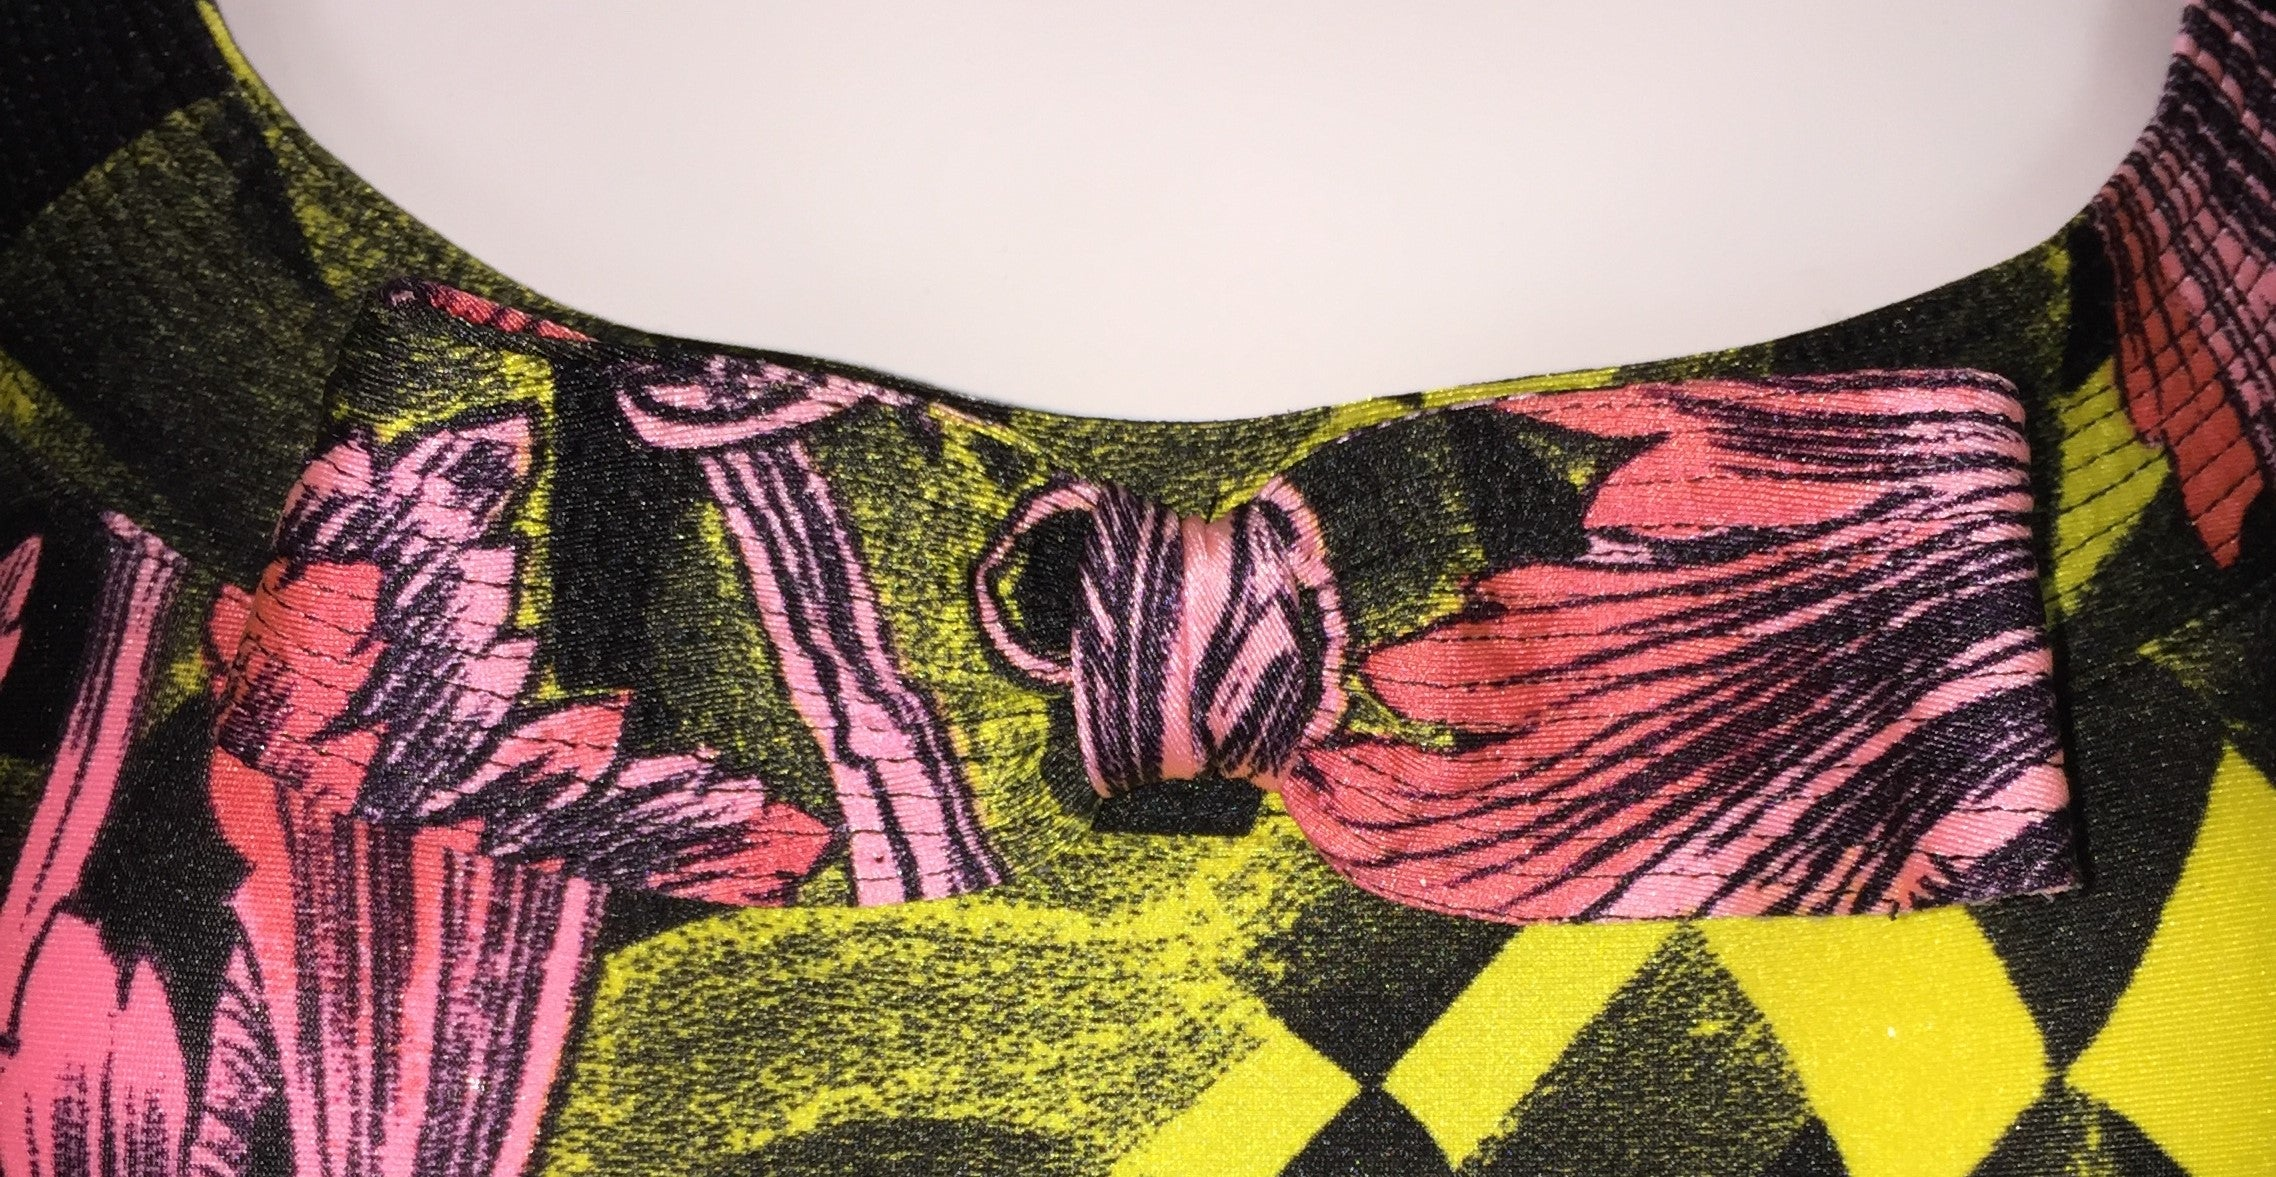 1991 Atelier Versace by Gianni Pink Black Yellow Print Bow Bodysuit Top For  Sale at 1stdibs 87fe0623b